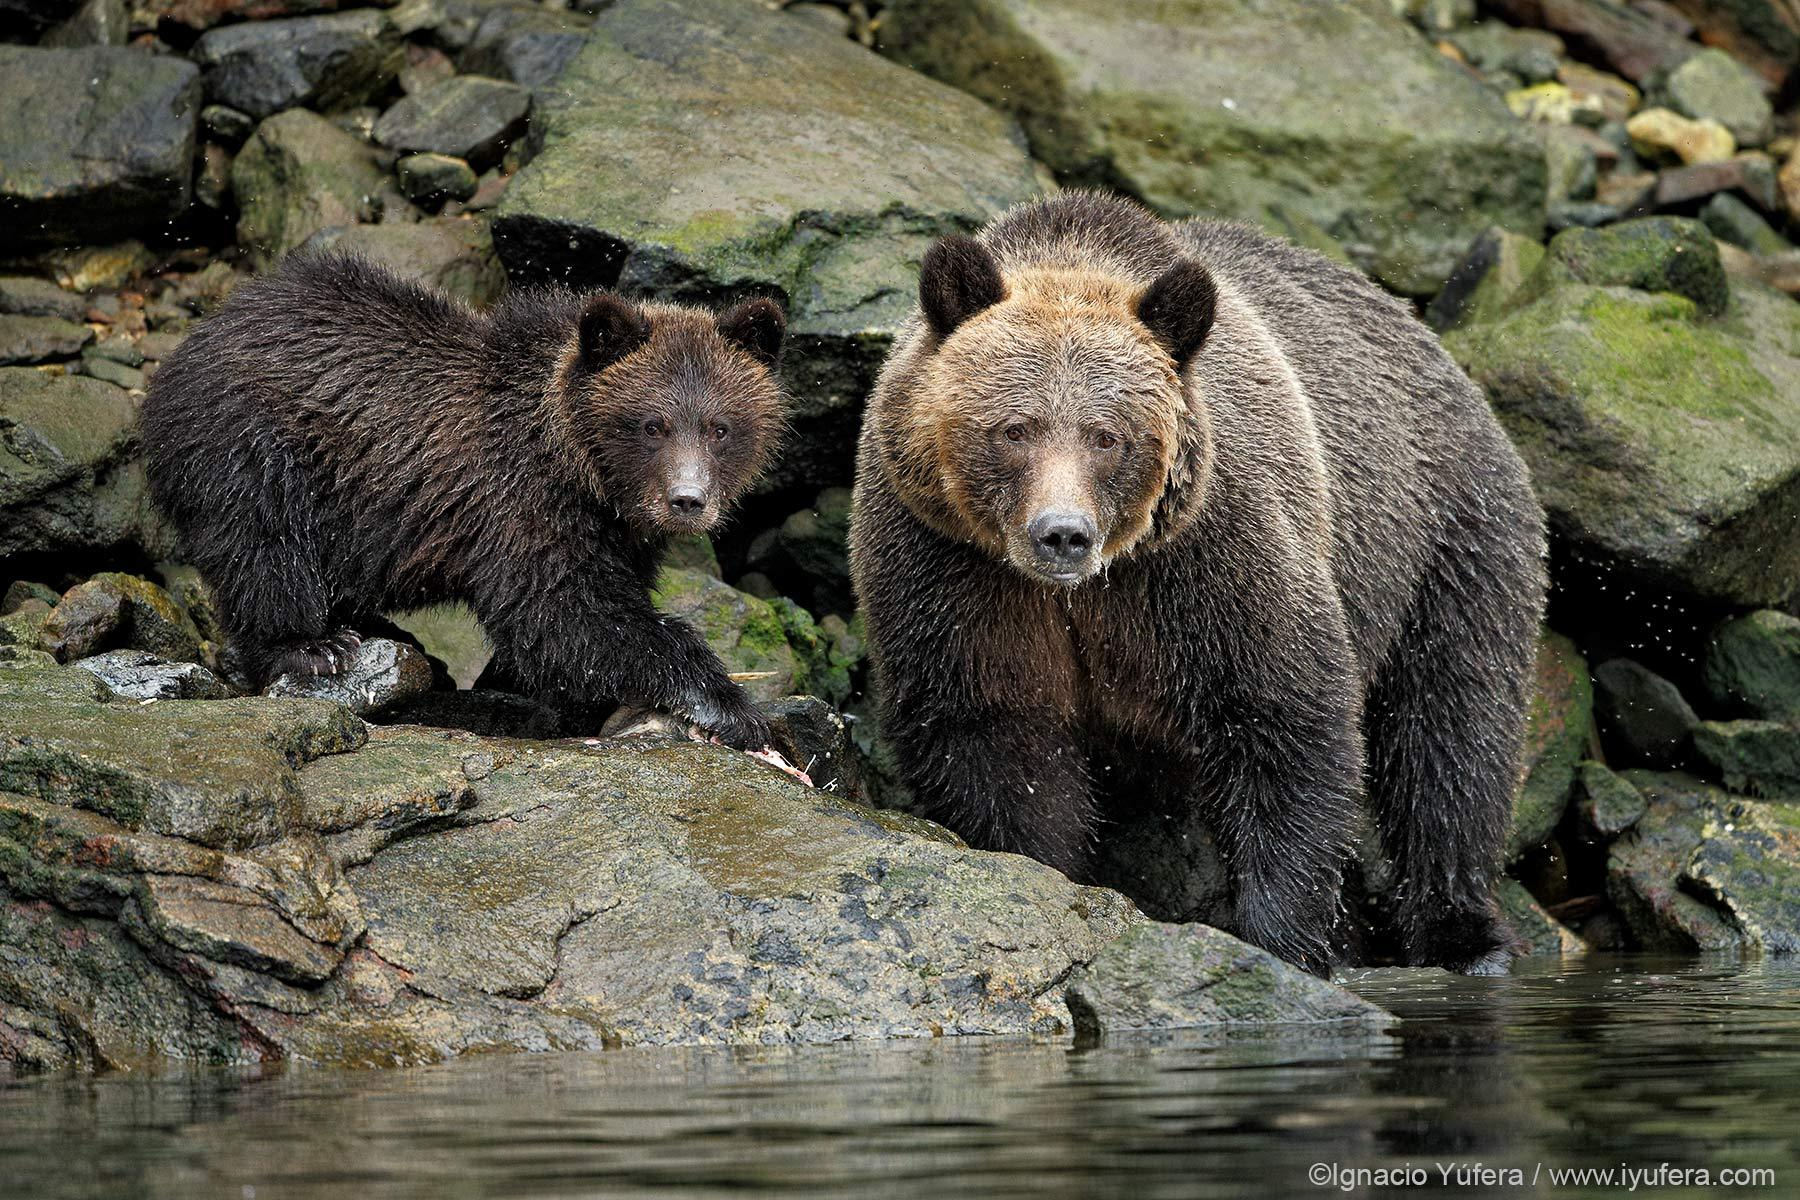 Grizzly sow and cub rocks